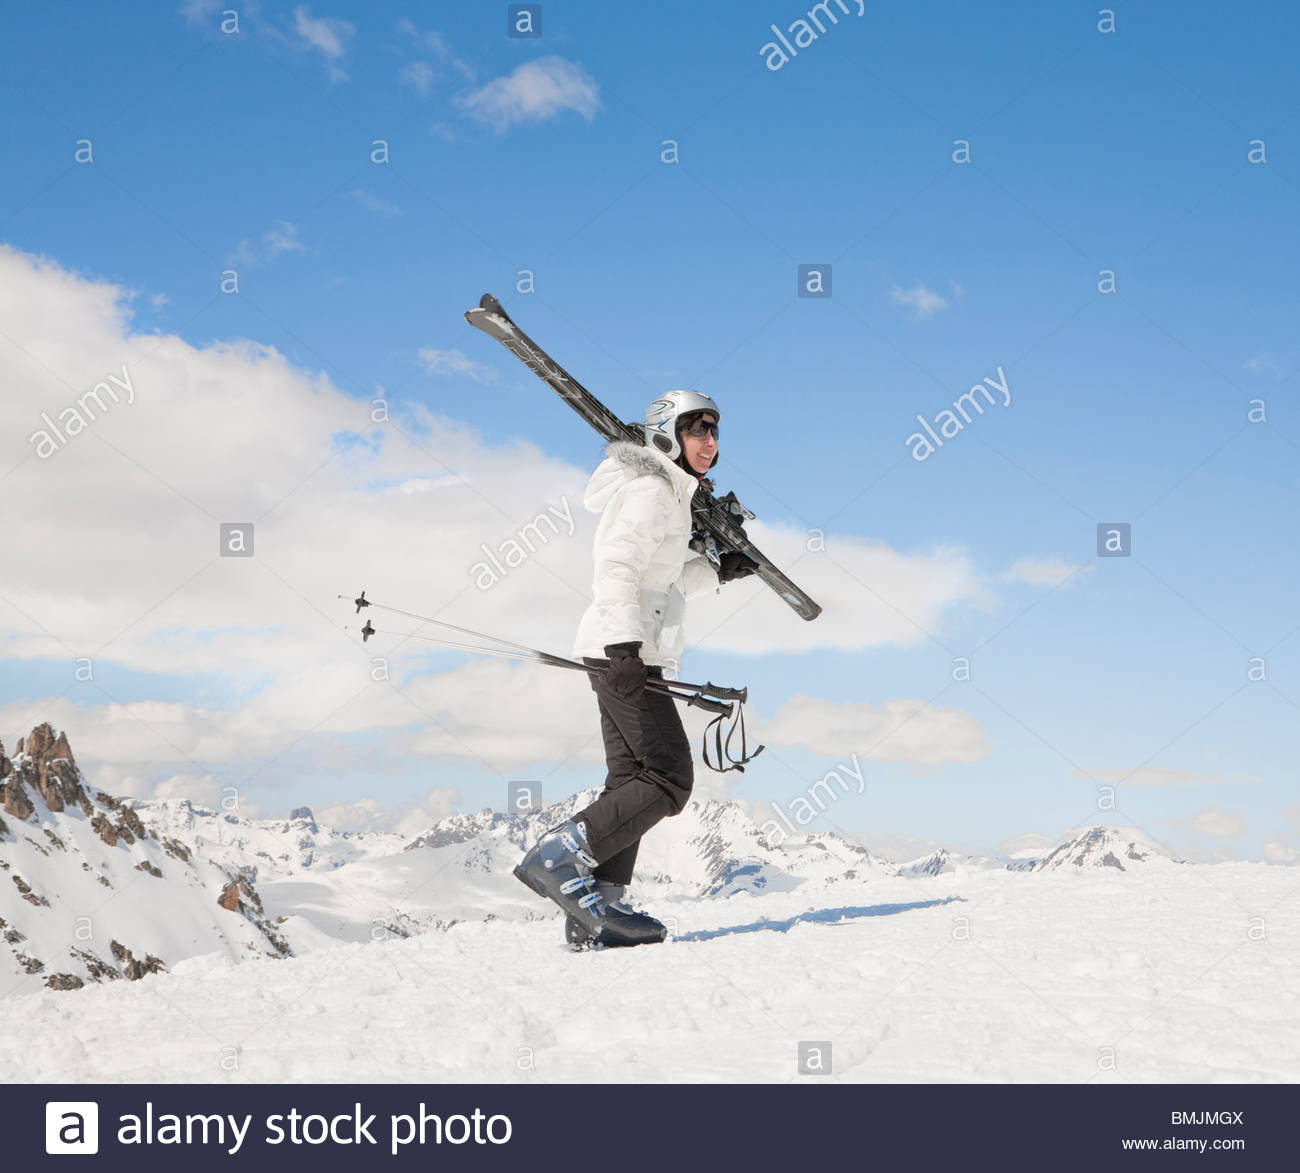 Woman walking up hill in snow, with skis - Stock Image